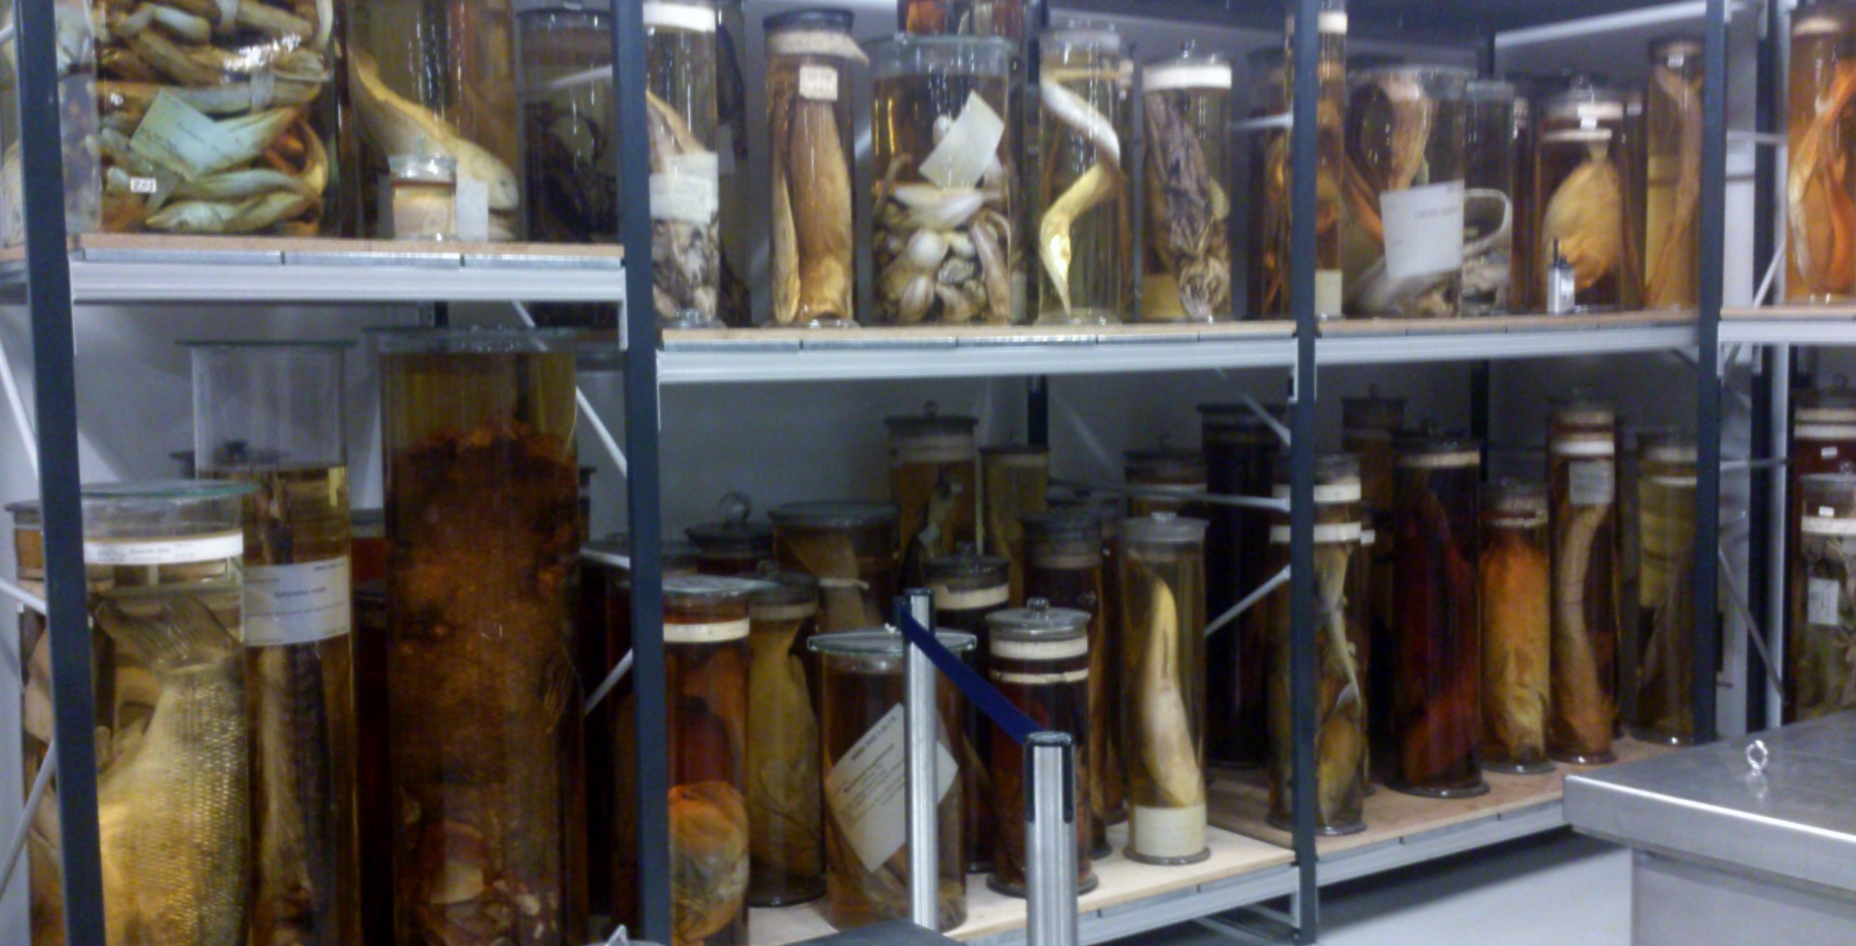 The Natural History Museum's tank room, where thousands of specimens are preseved